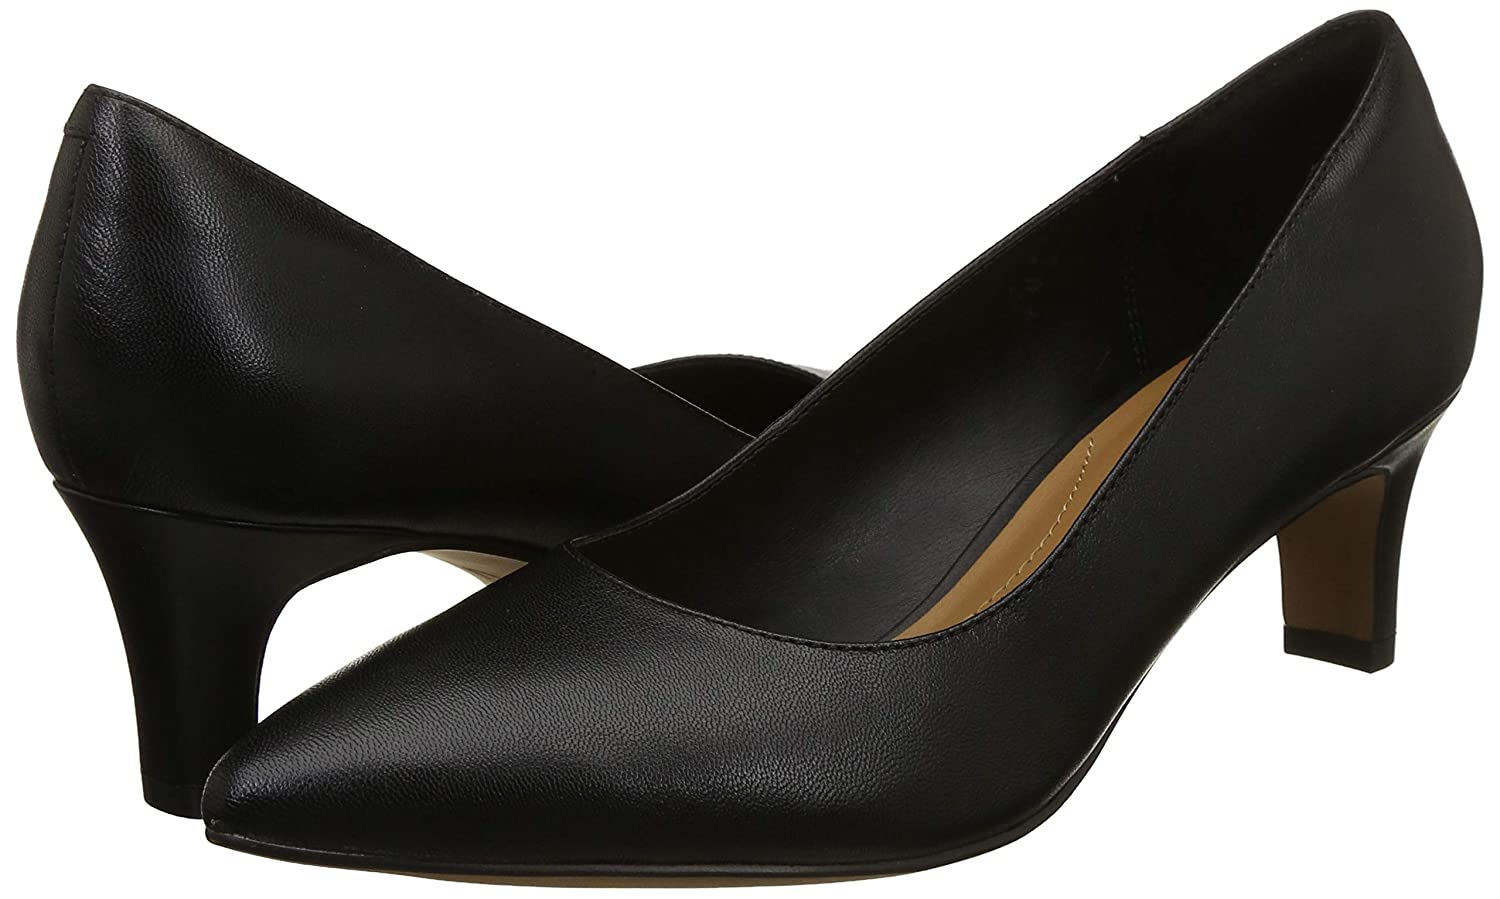 Clarks Women's Crewso Wick Pumps